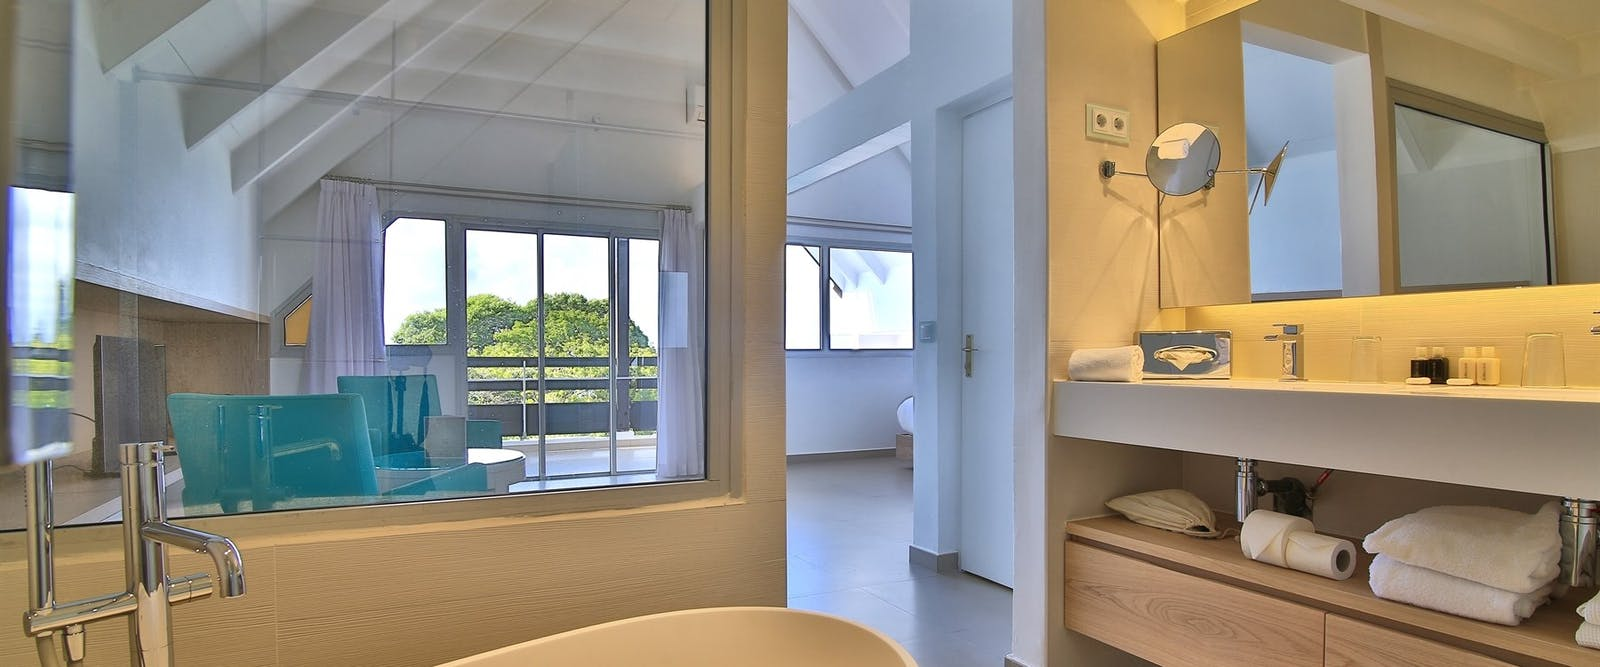 Suite Bathroom At Mahogany Hotel Residencia & Spa, Guadeloupe